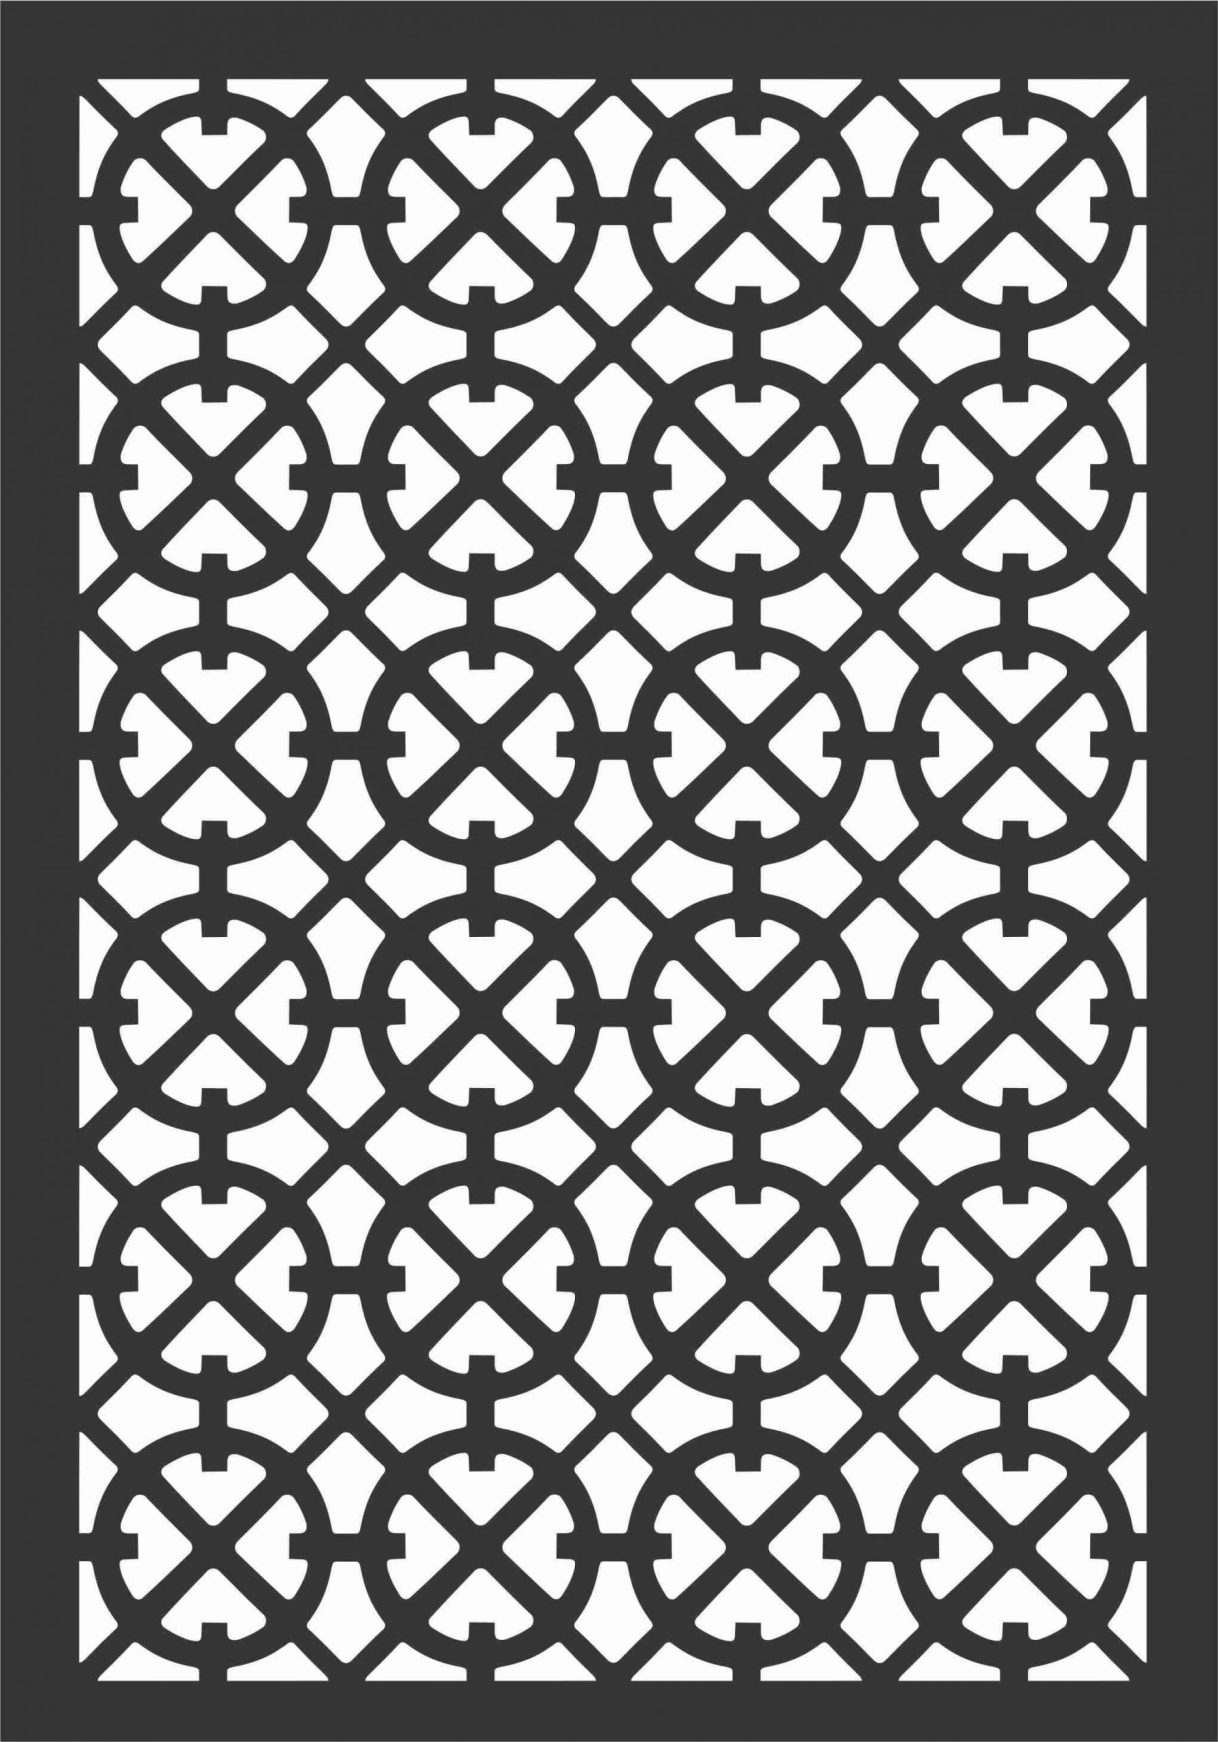 Floral Screen Patterns Design 79 Free DXF File